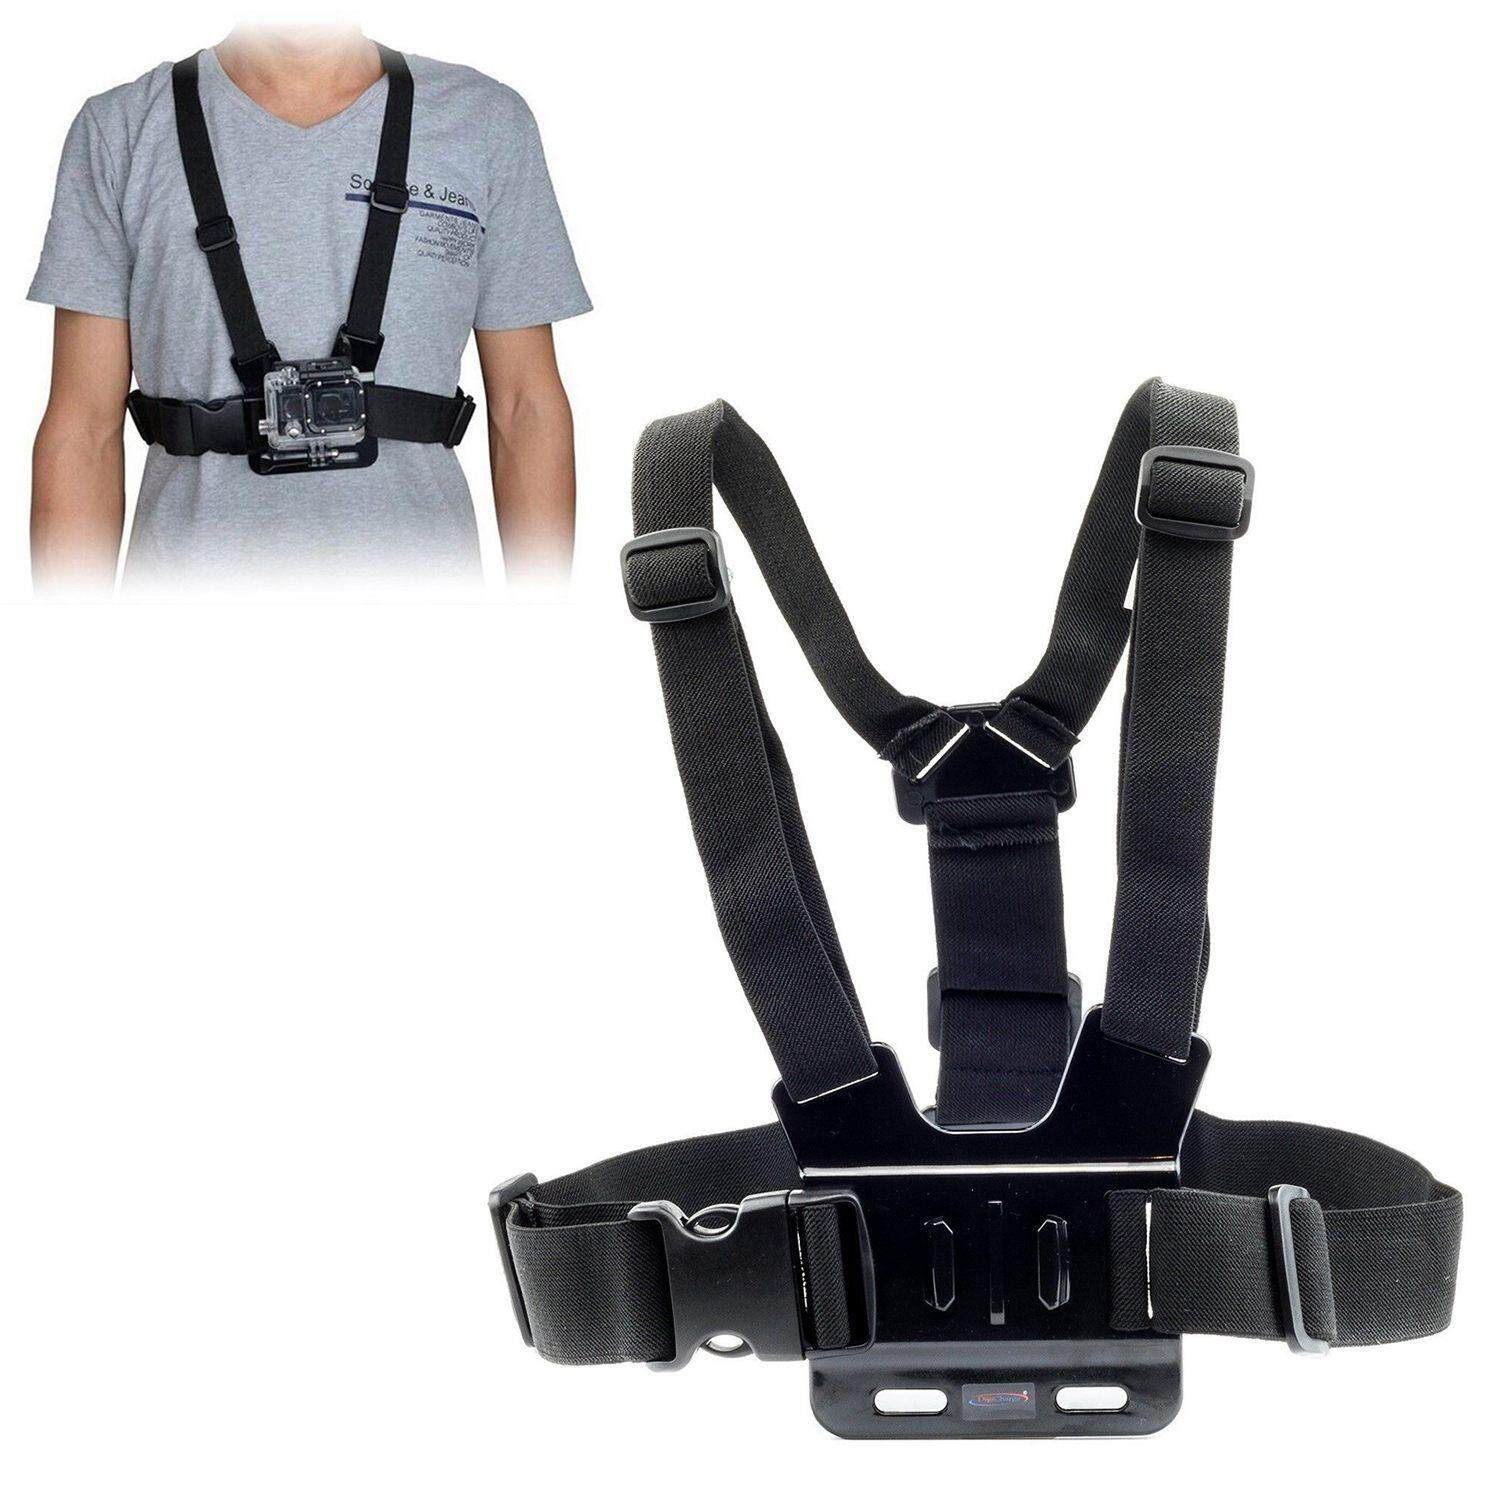 Chest Strap For Gopro Hd Hero 6 5 4 3+ 3 2 1 Action Camera Harness Mount By Tobbehere.